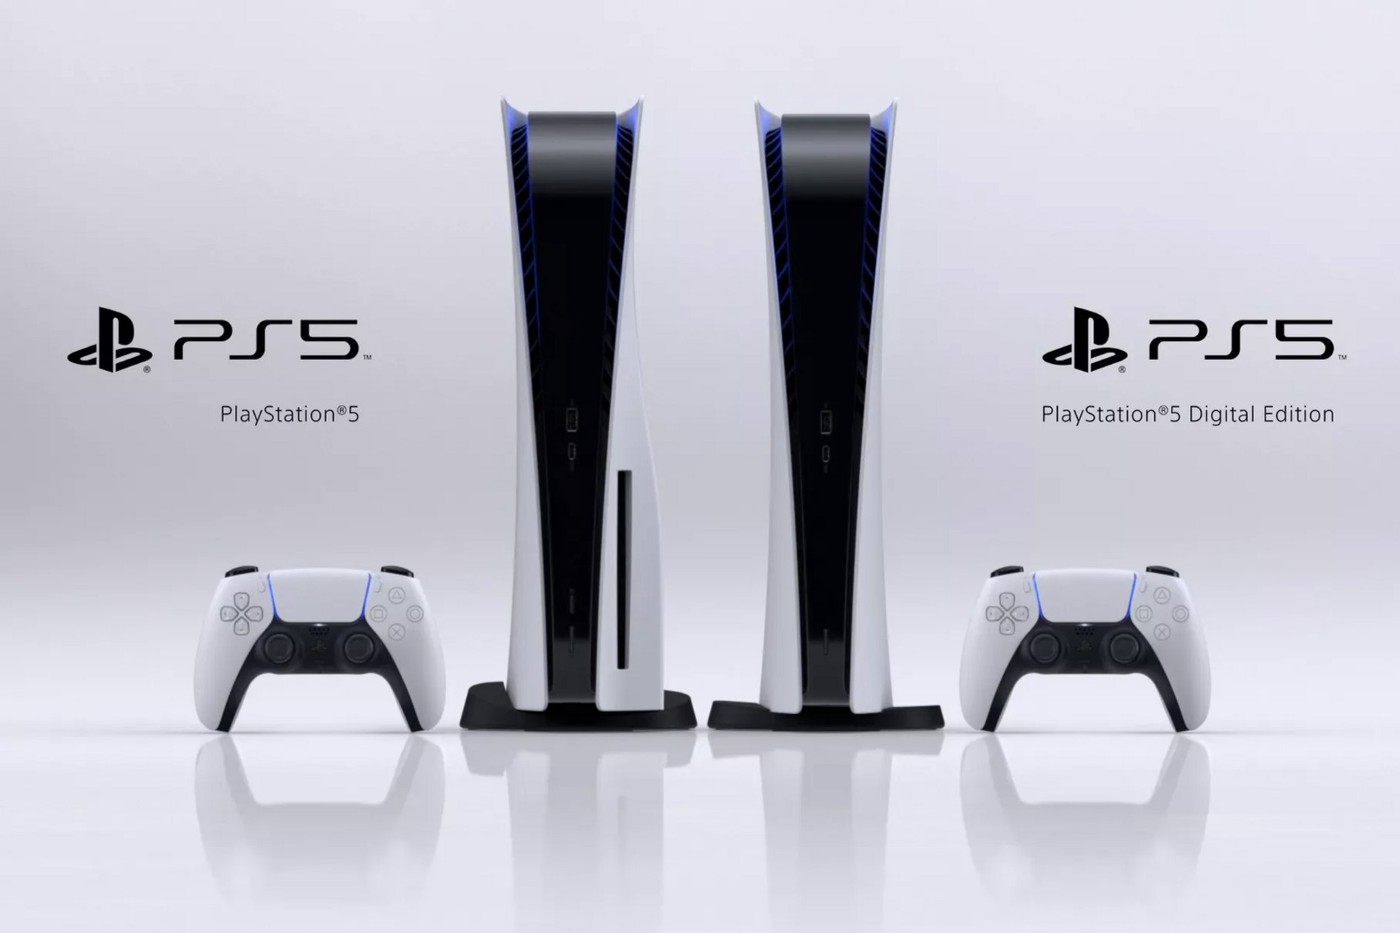 Announcement of Sony PlayStation 5 and Sony PlayStation 5 Digital Edition consoles.